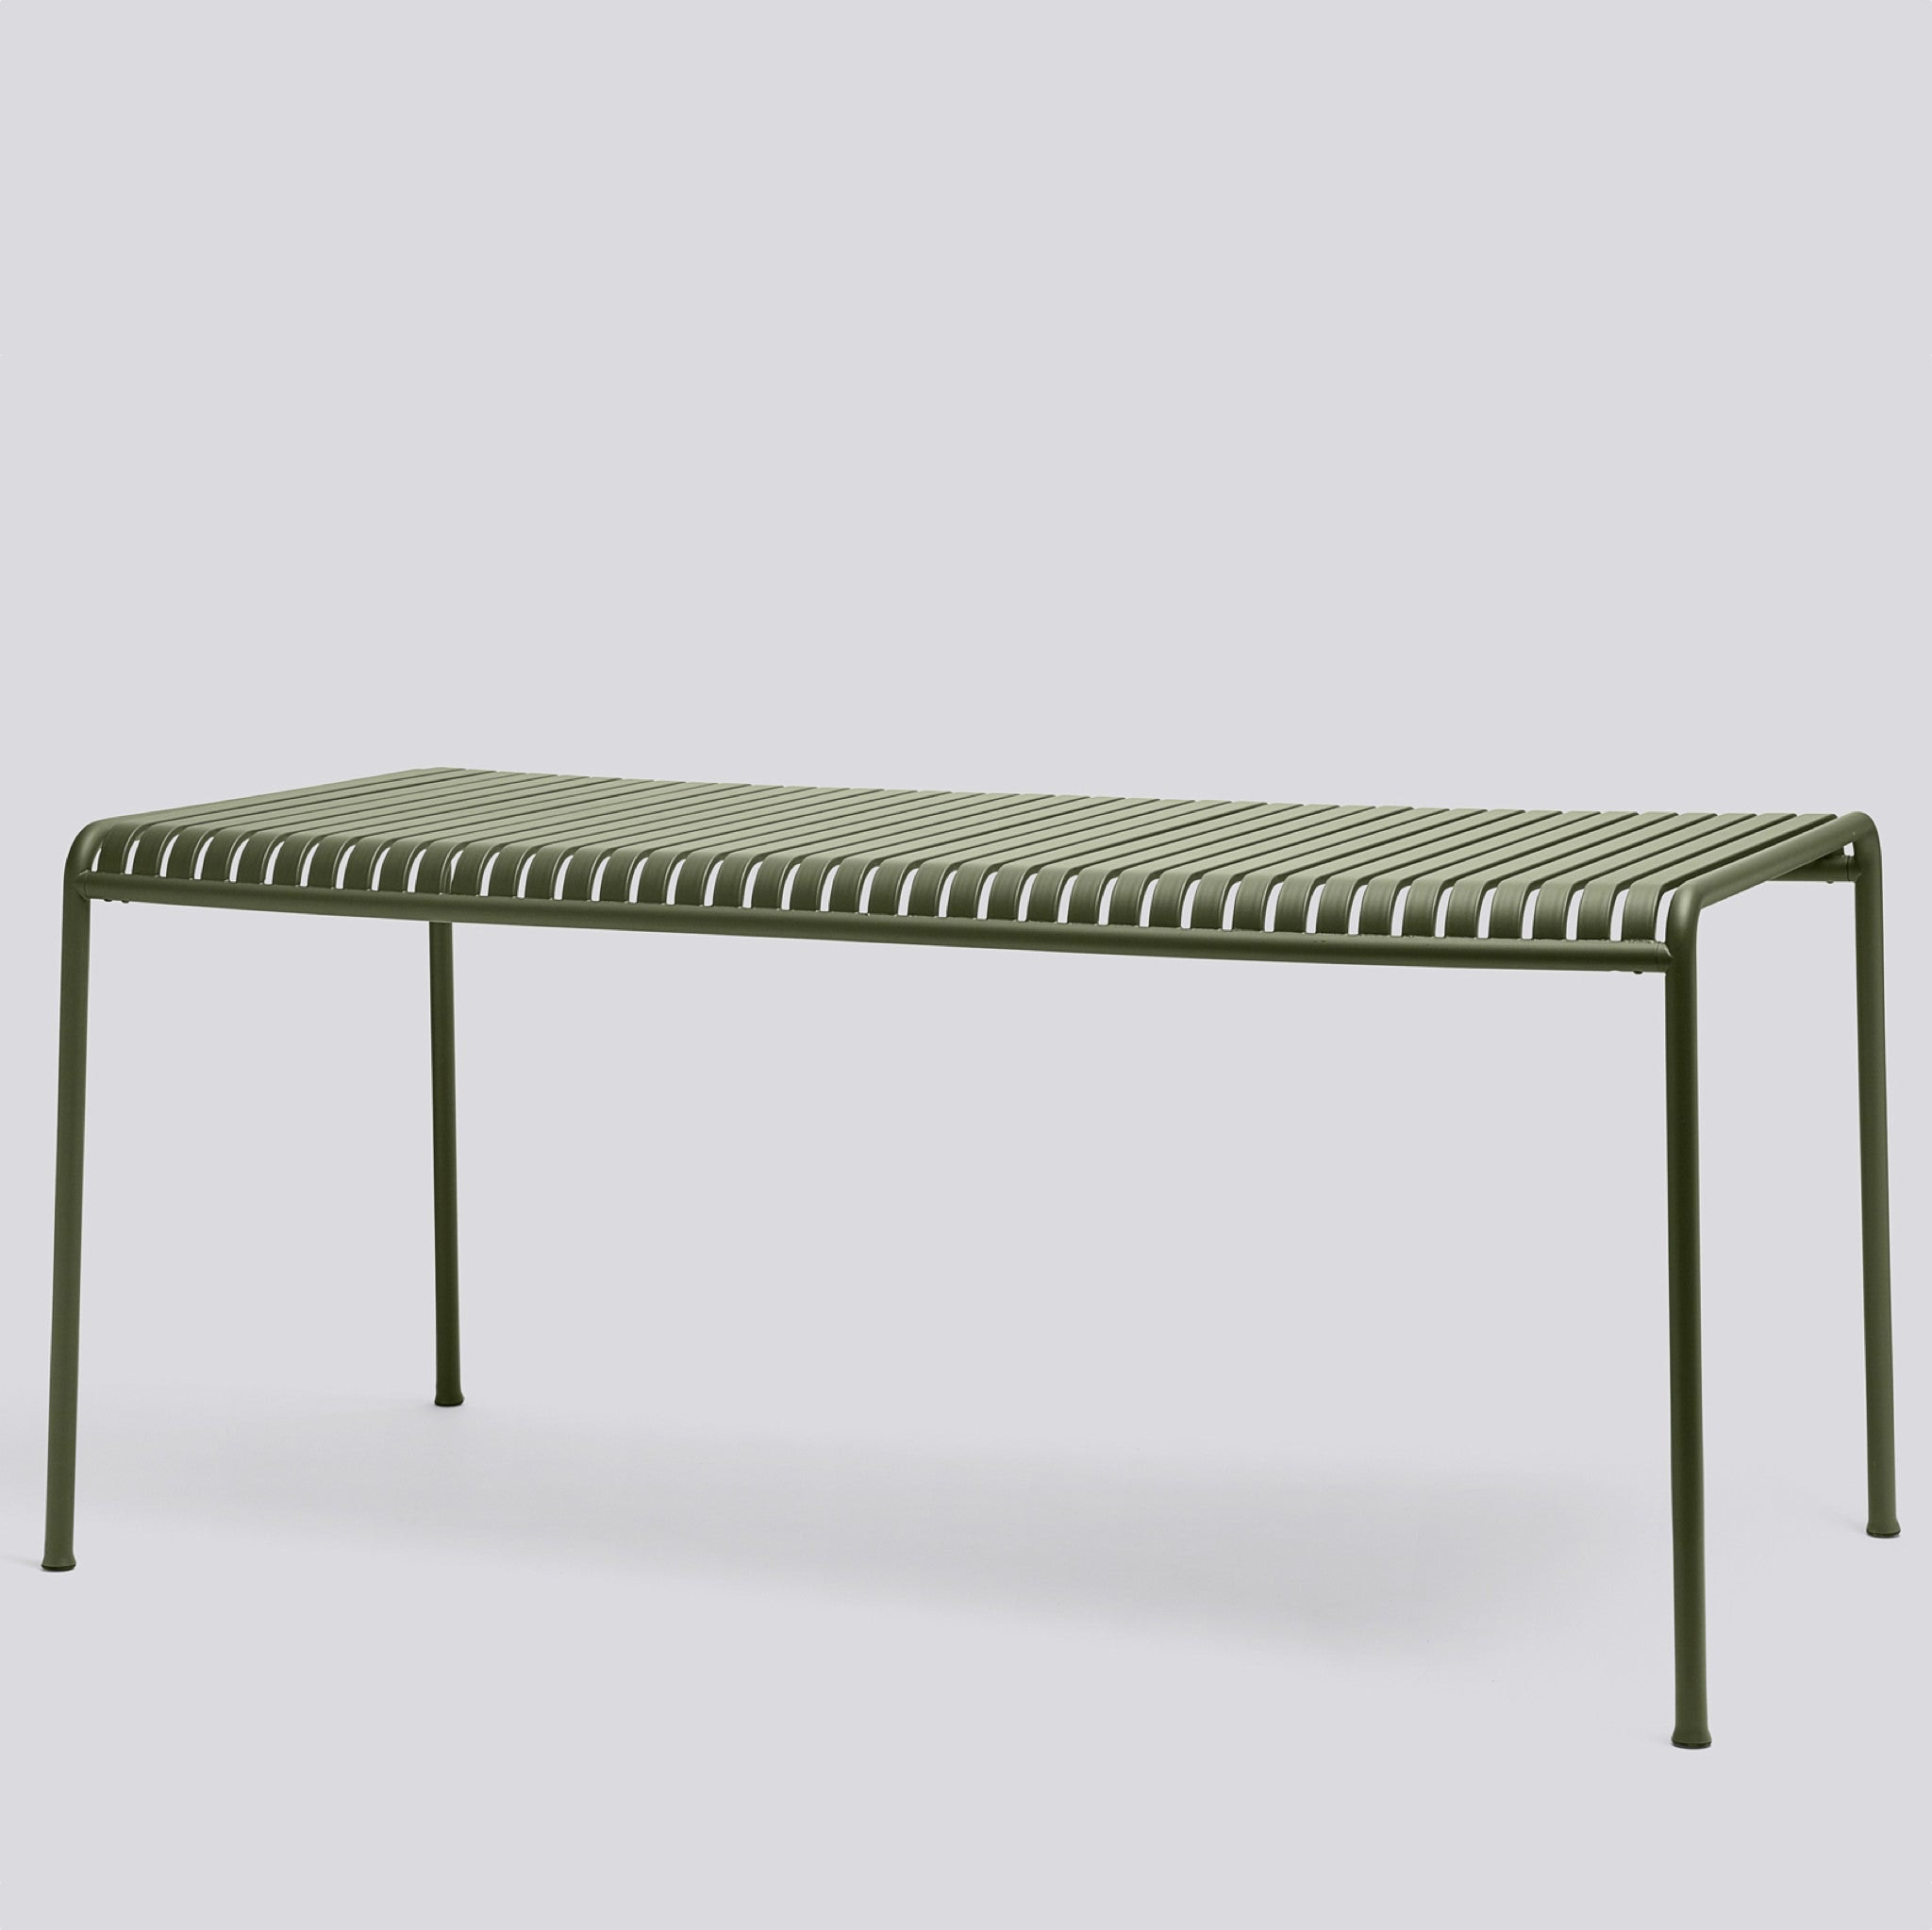 Palissade Table 160x80 by Hay